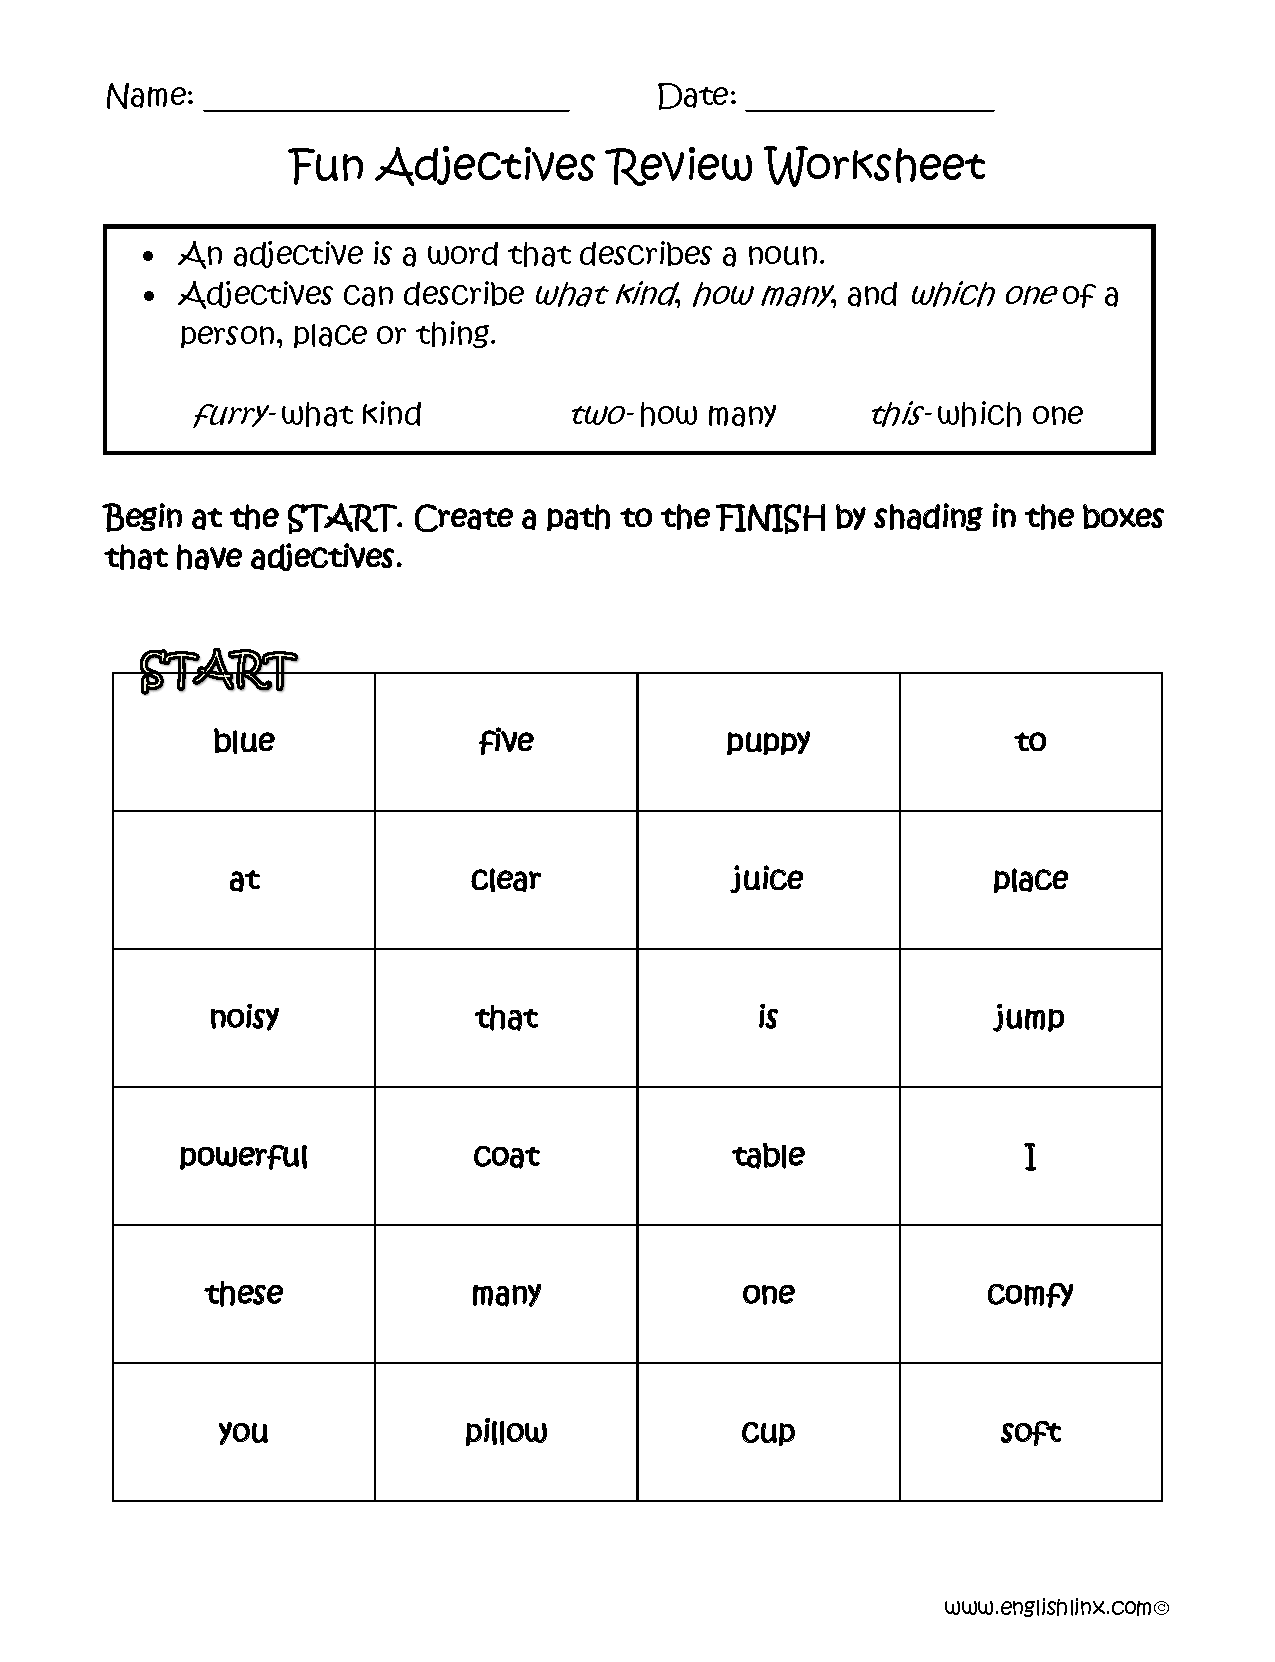 Fun Adjectives Review Worksheets